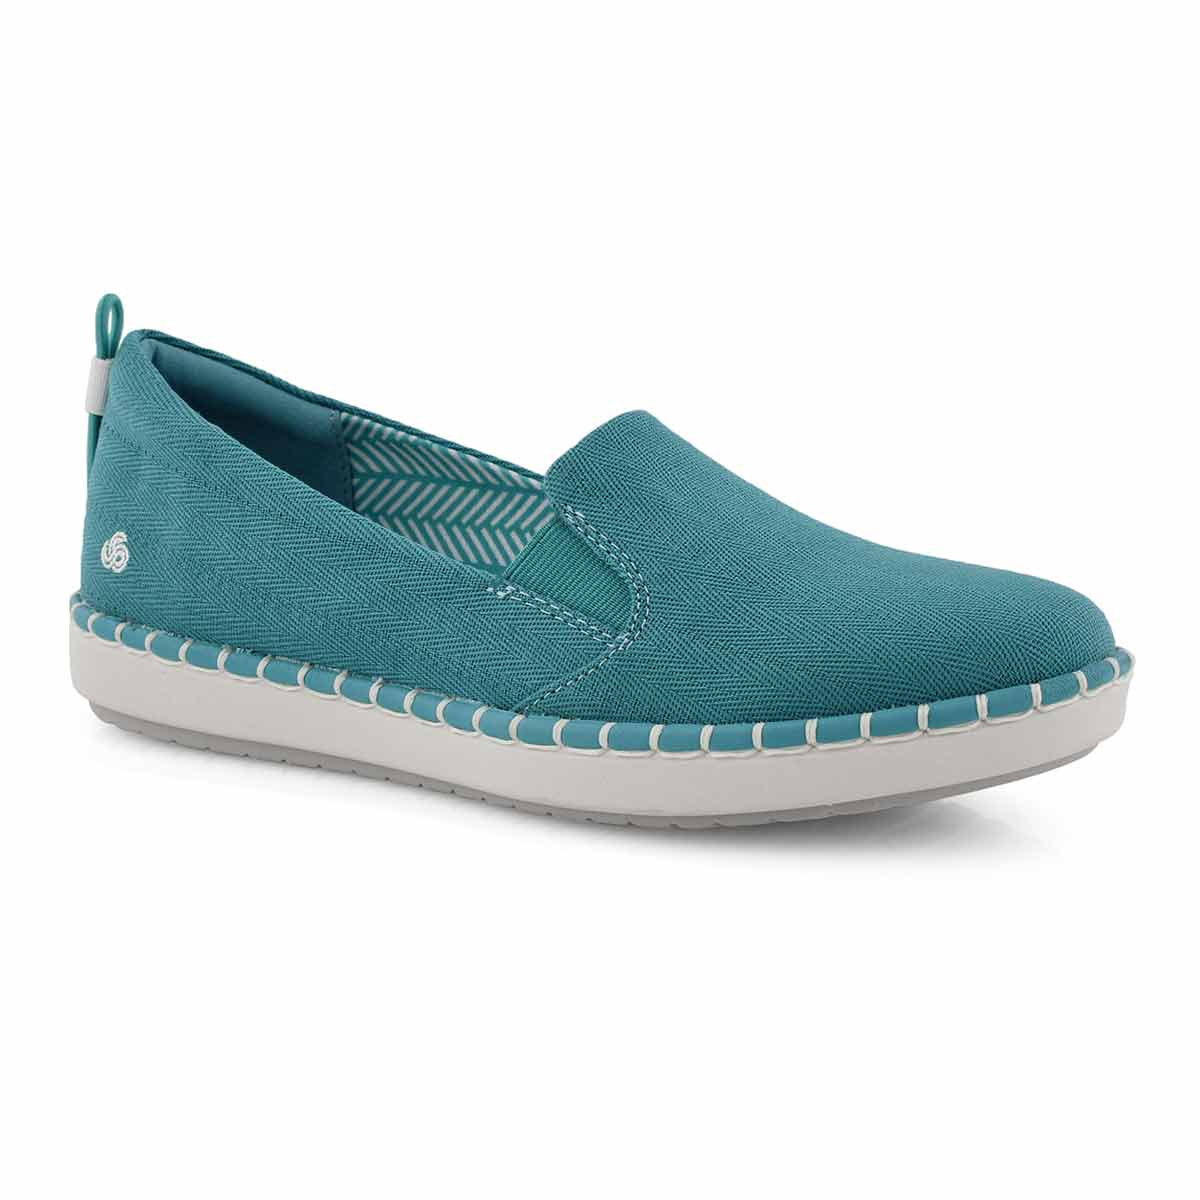 Lds Step Glow Slip aqua casual loafer